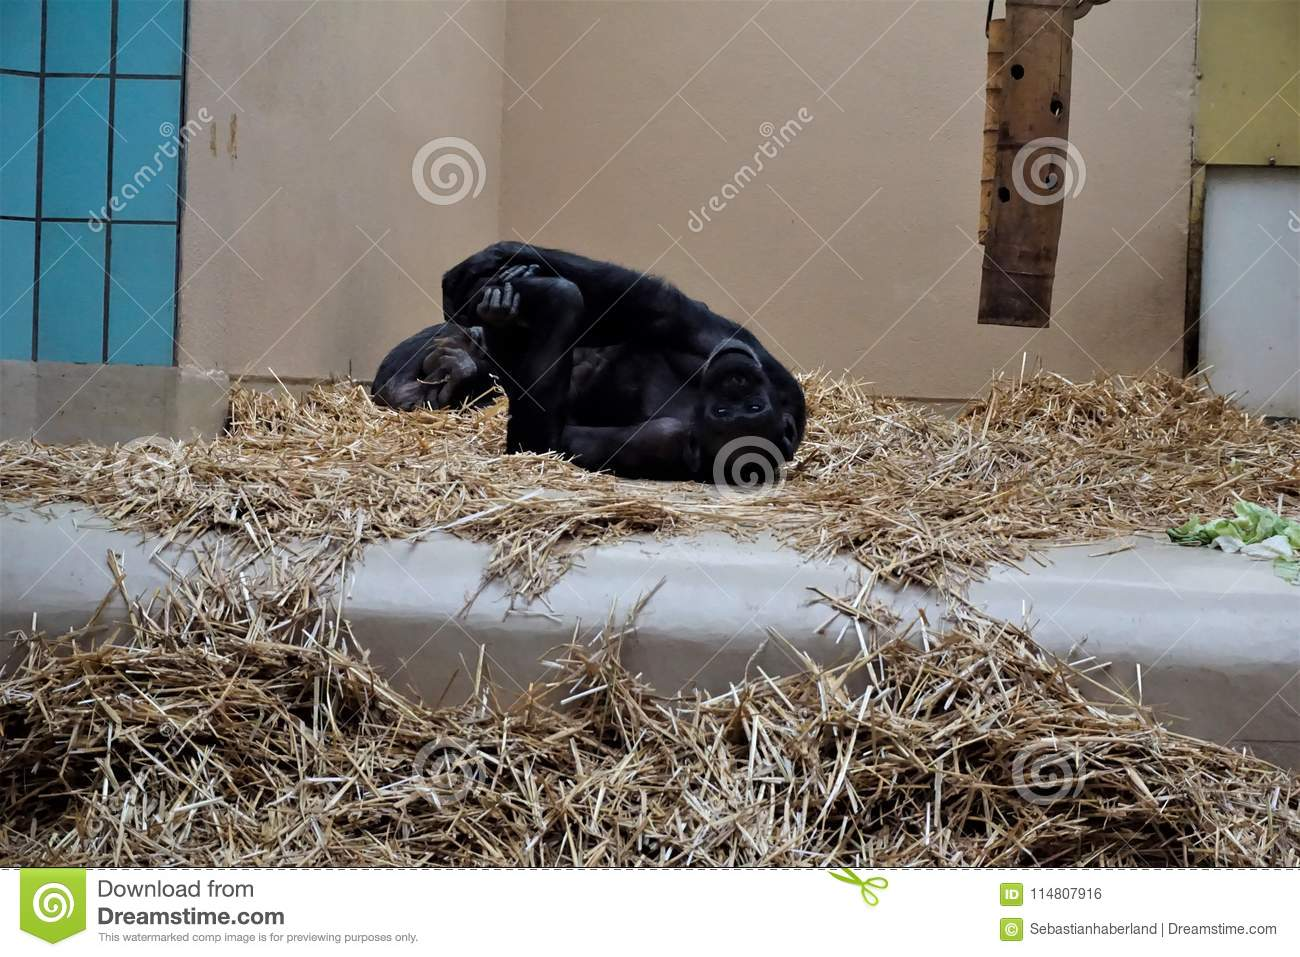 Chimpanzee stretching in the straw looking funny